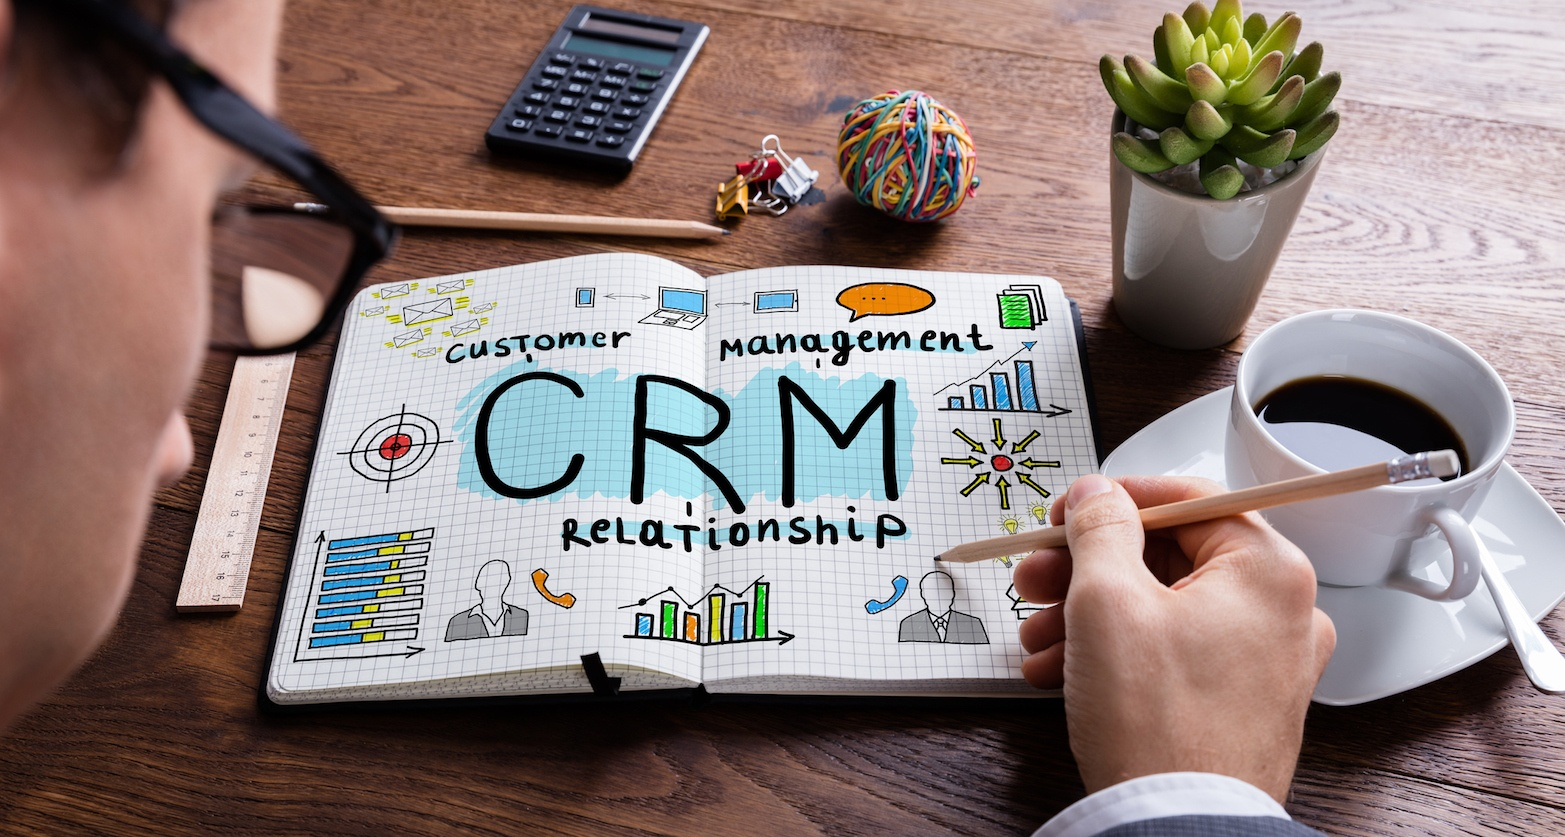 Marketing Automation e CRM come integrarli con HubSpot